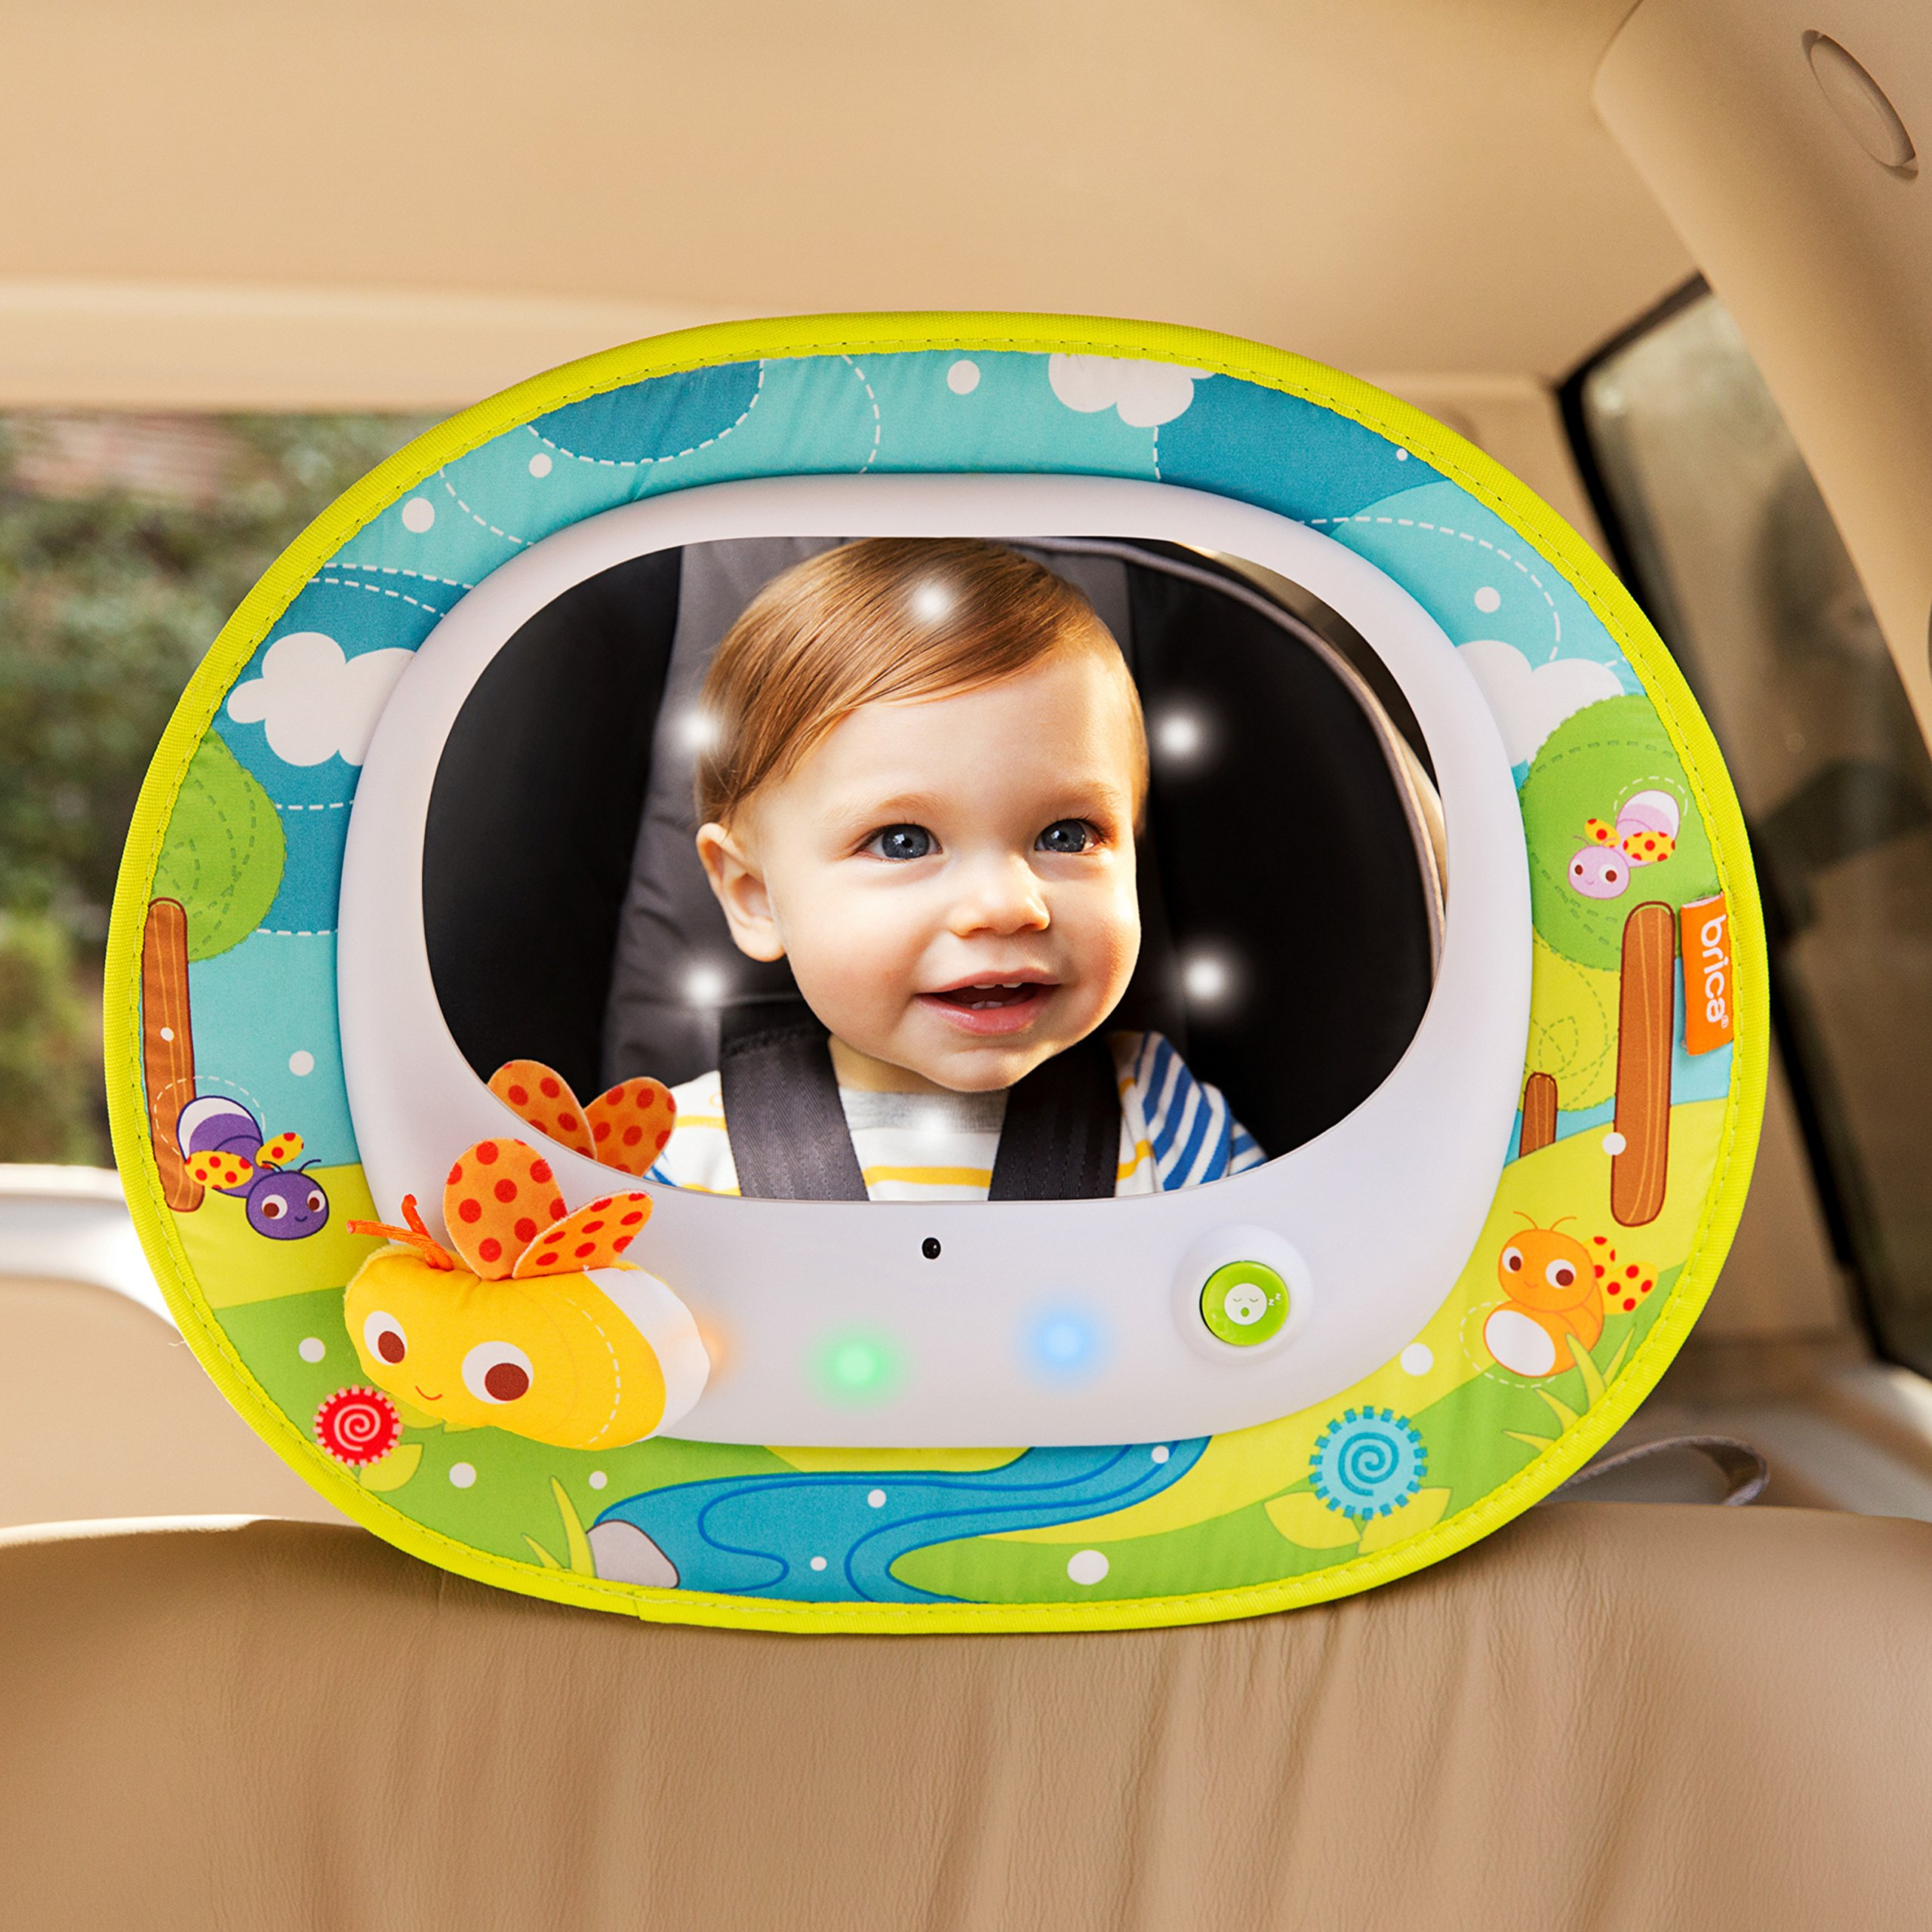 Brica Firefly Baby In Sight Rear Facing Car Seat Mirror Has A Very Unique Touch To It First Of All This Is Covered Colorful And Sweet